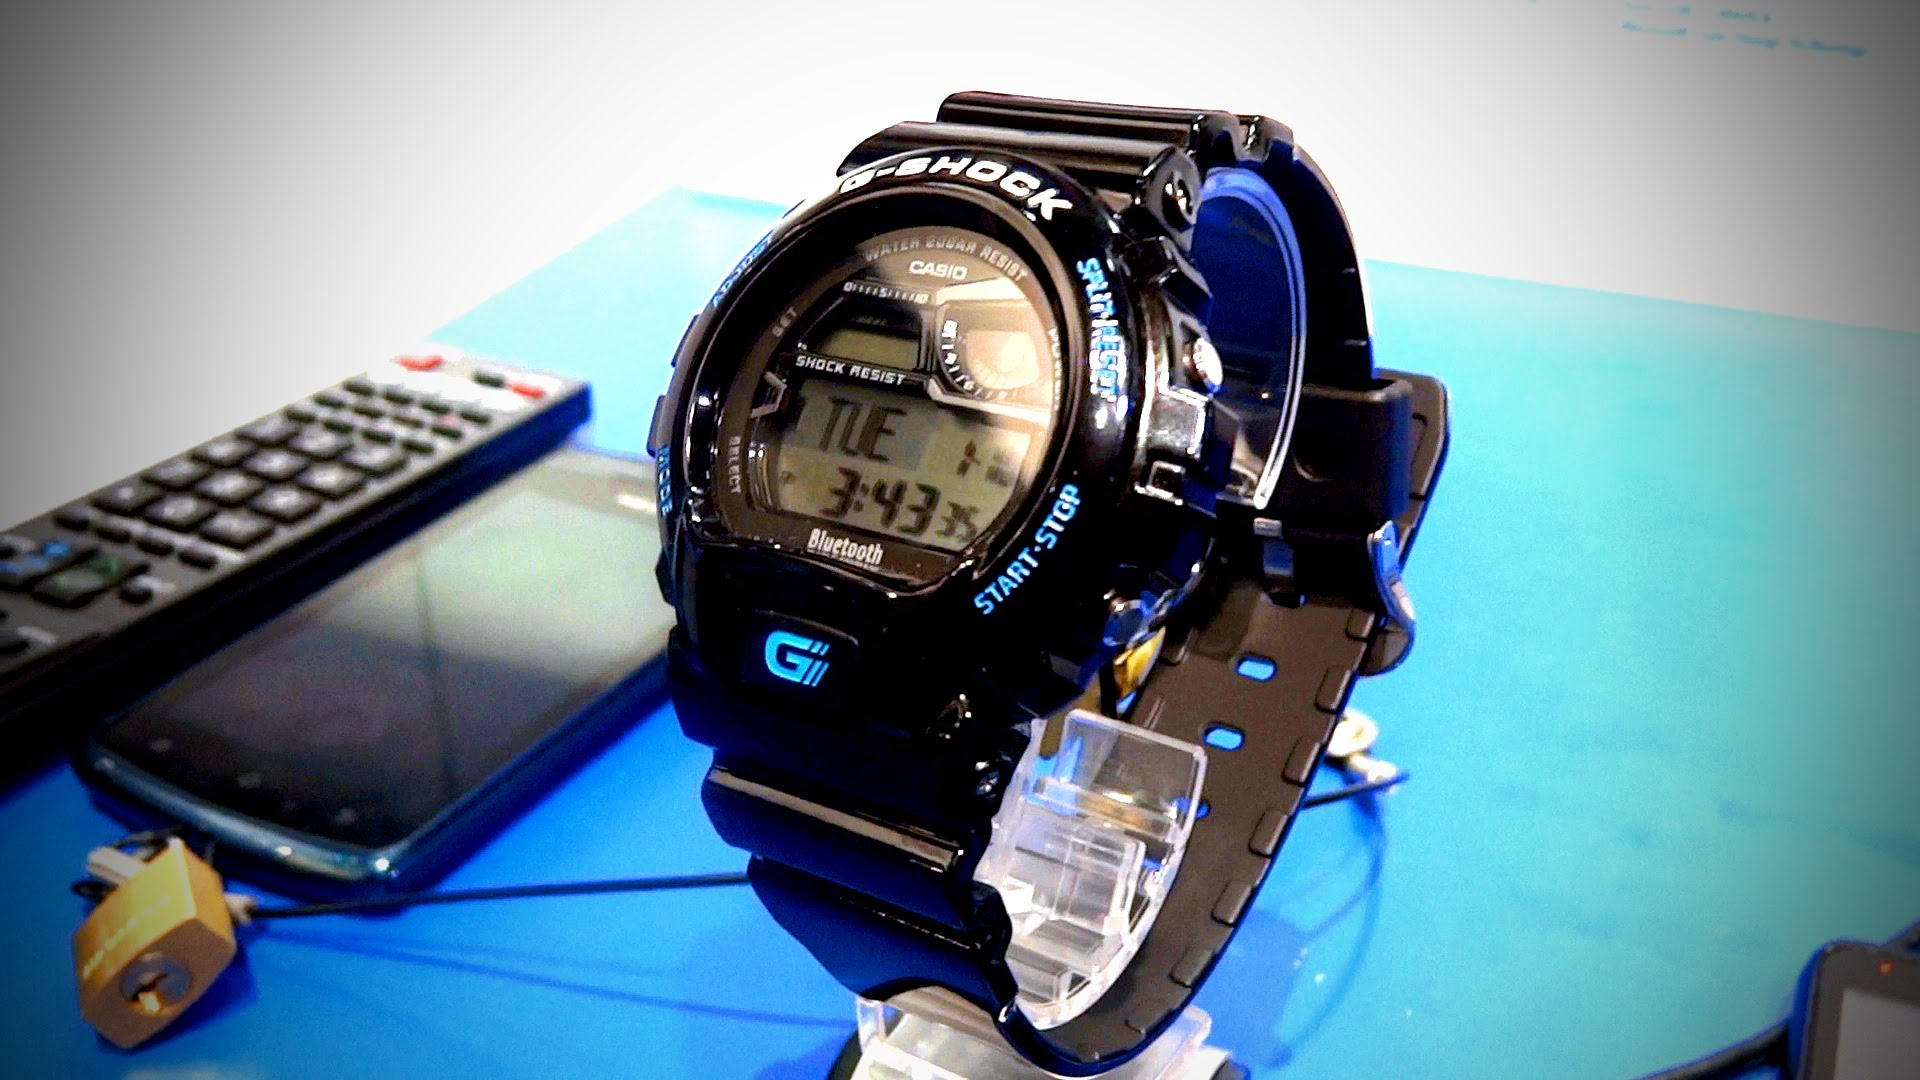 Leto 2012, Casio G-Shock GB-6900